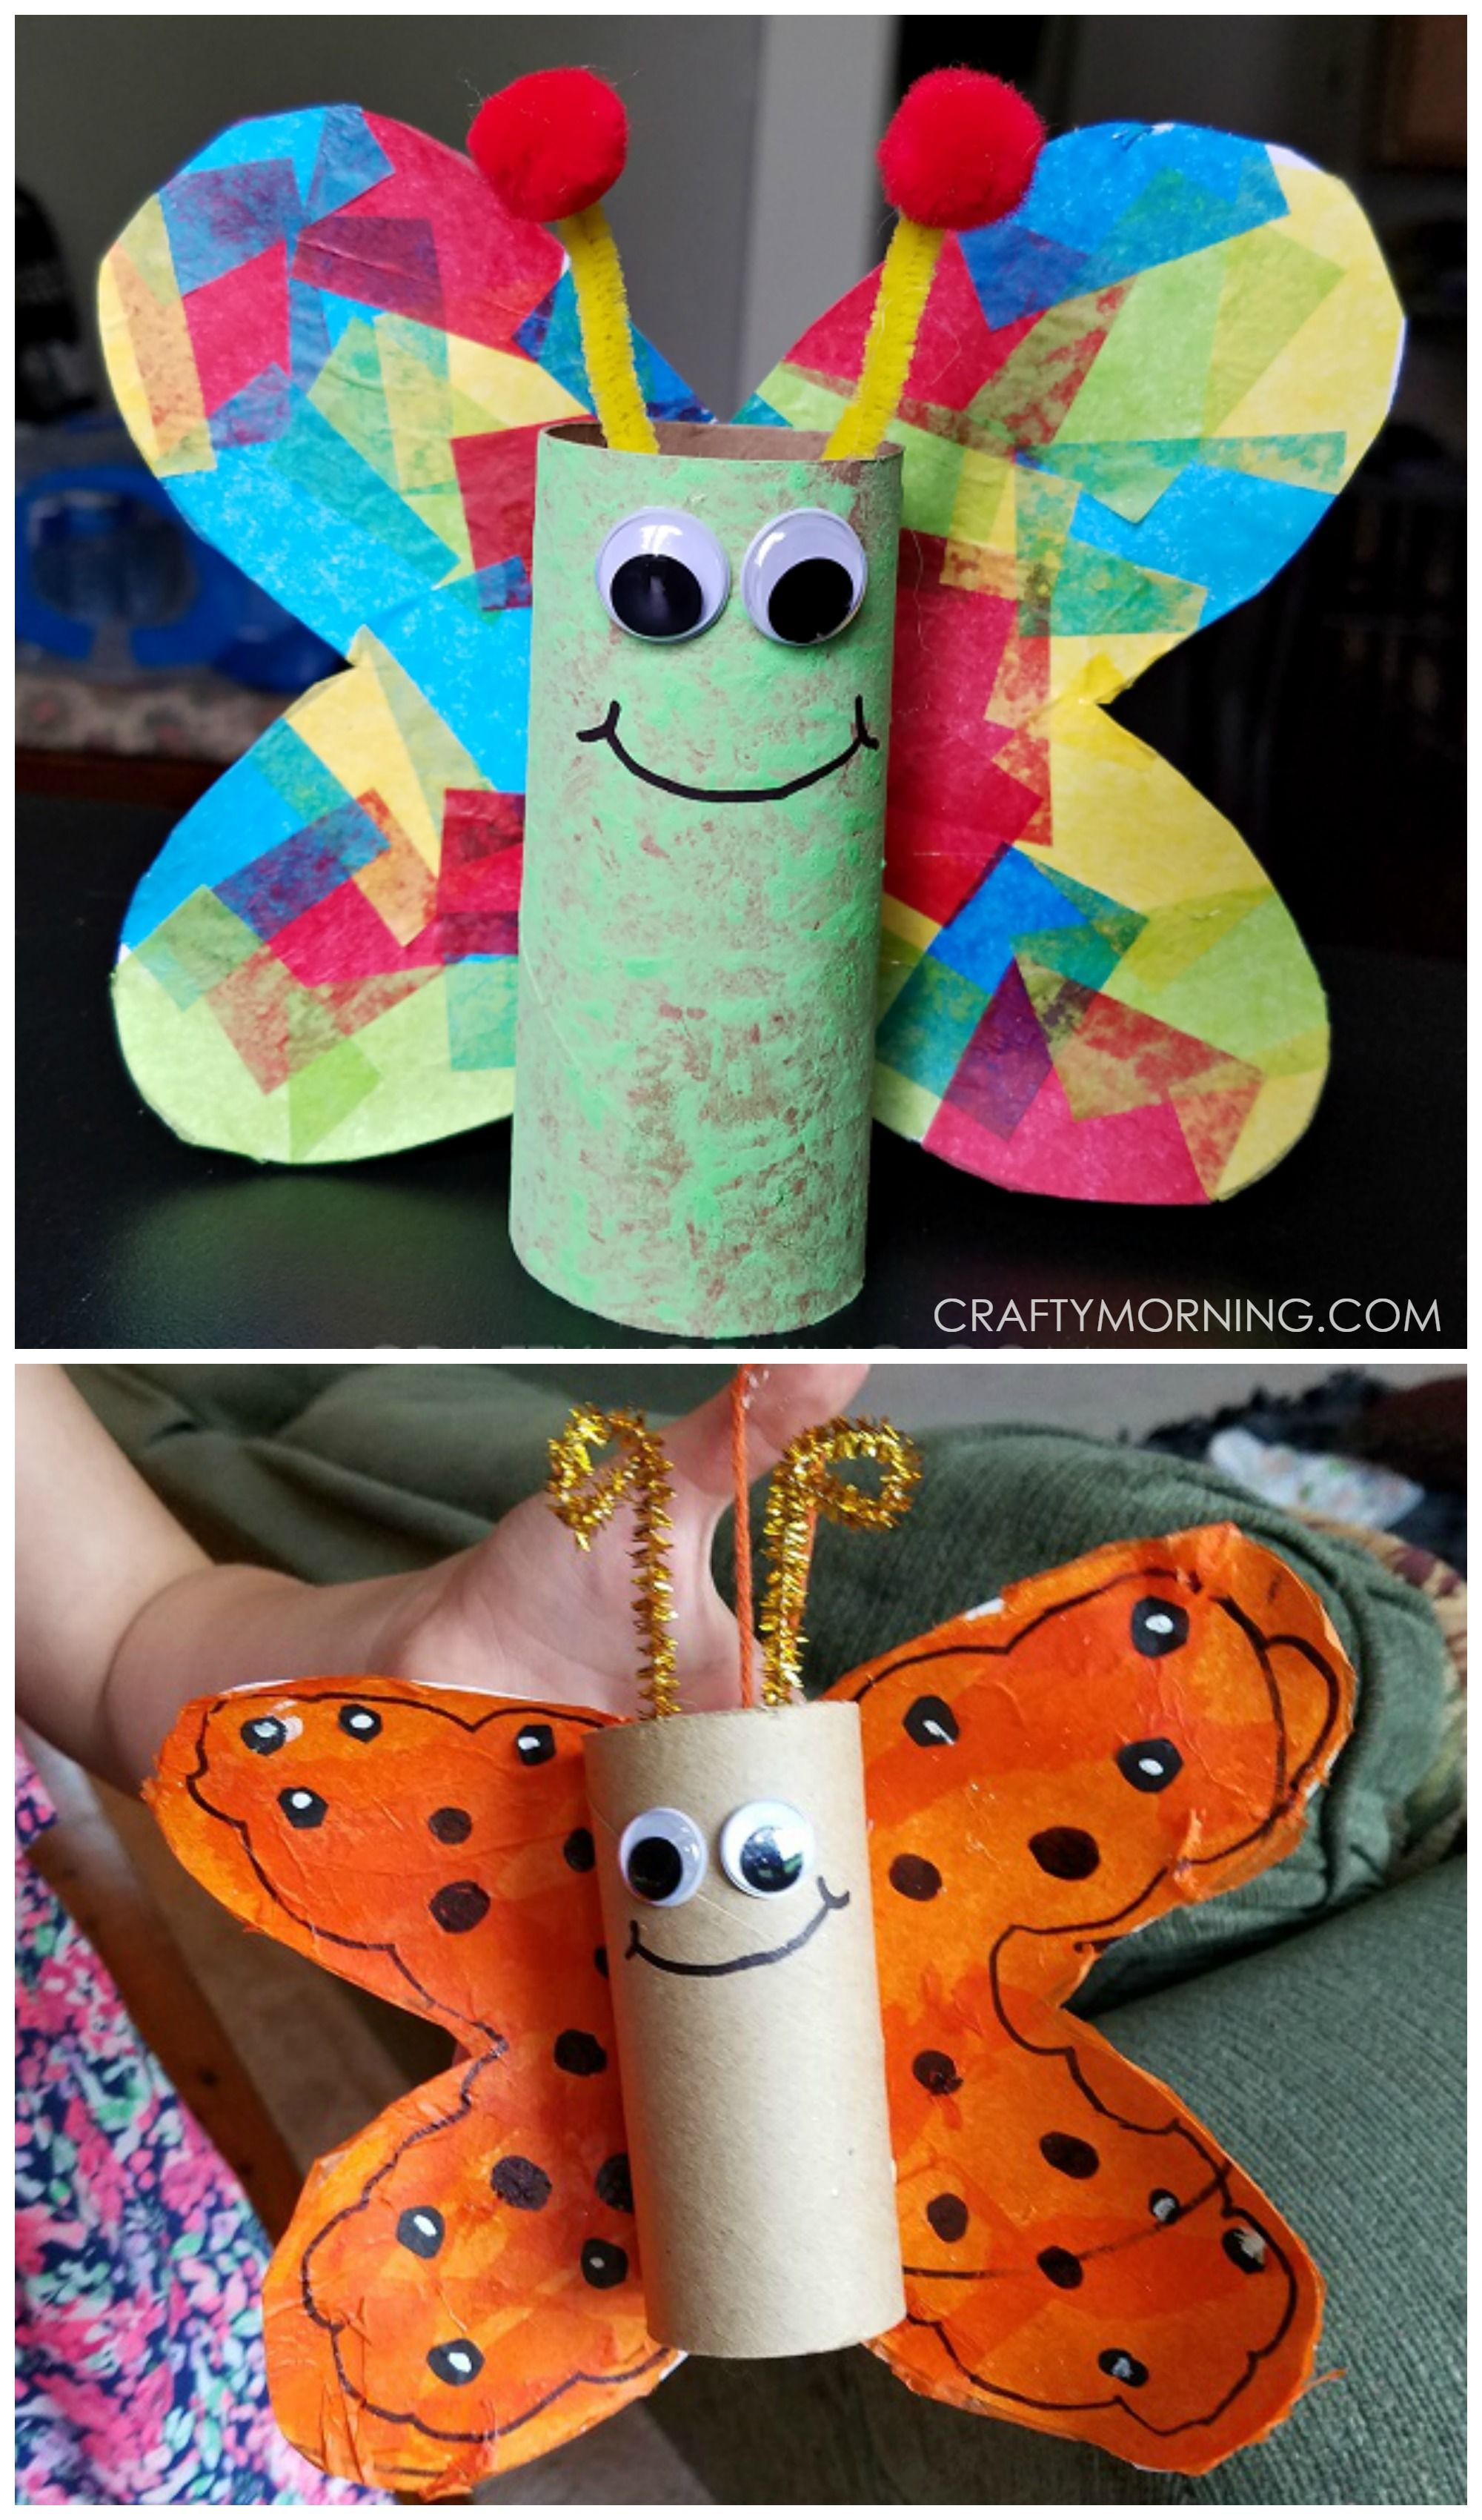 Cardboard tube butterfly craft for kids to make! Perfect for spring ...